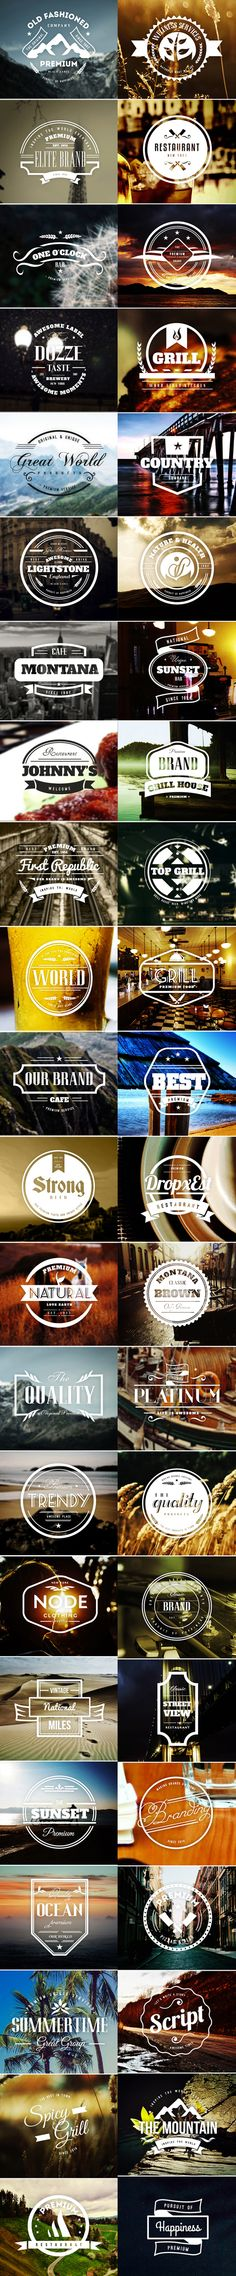 45 Vintage Labels & Badges Logos - Premium Bundle by Design District, via Behance